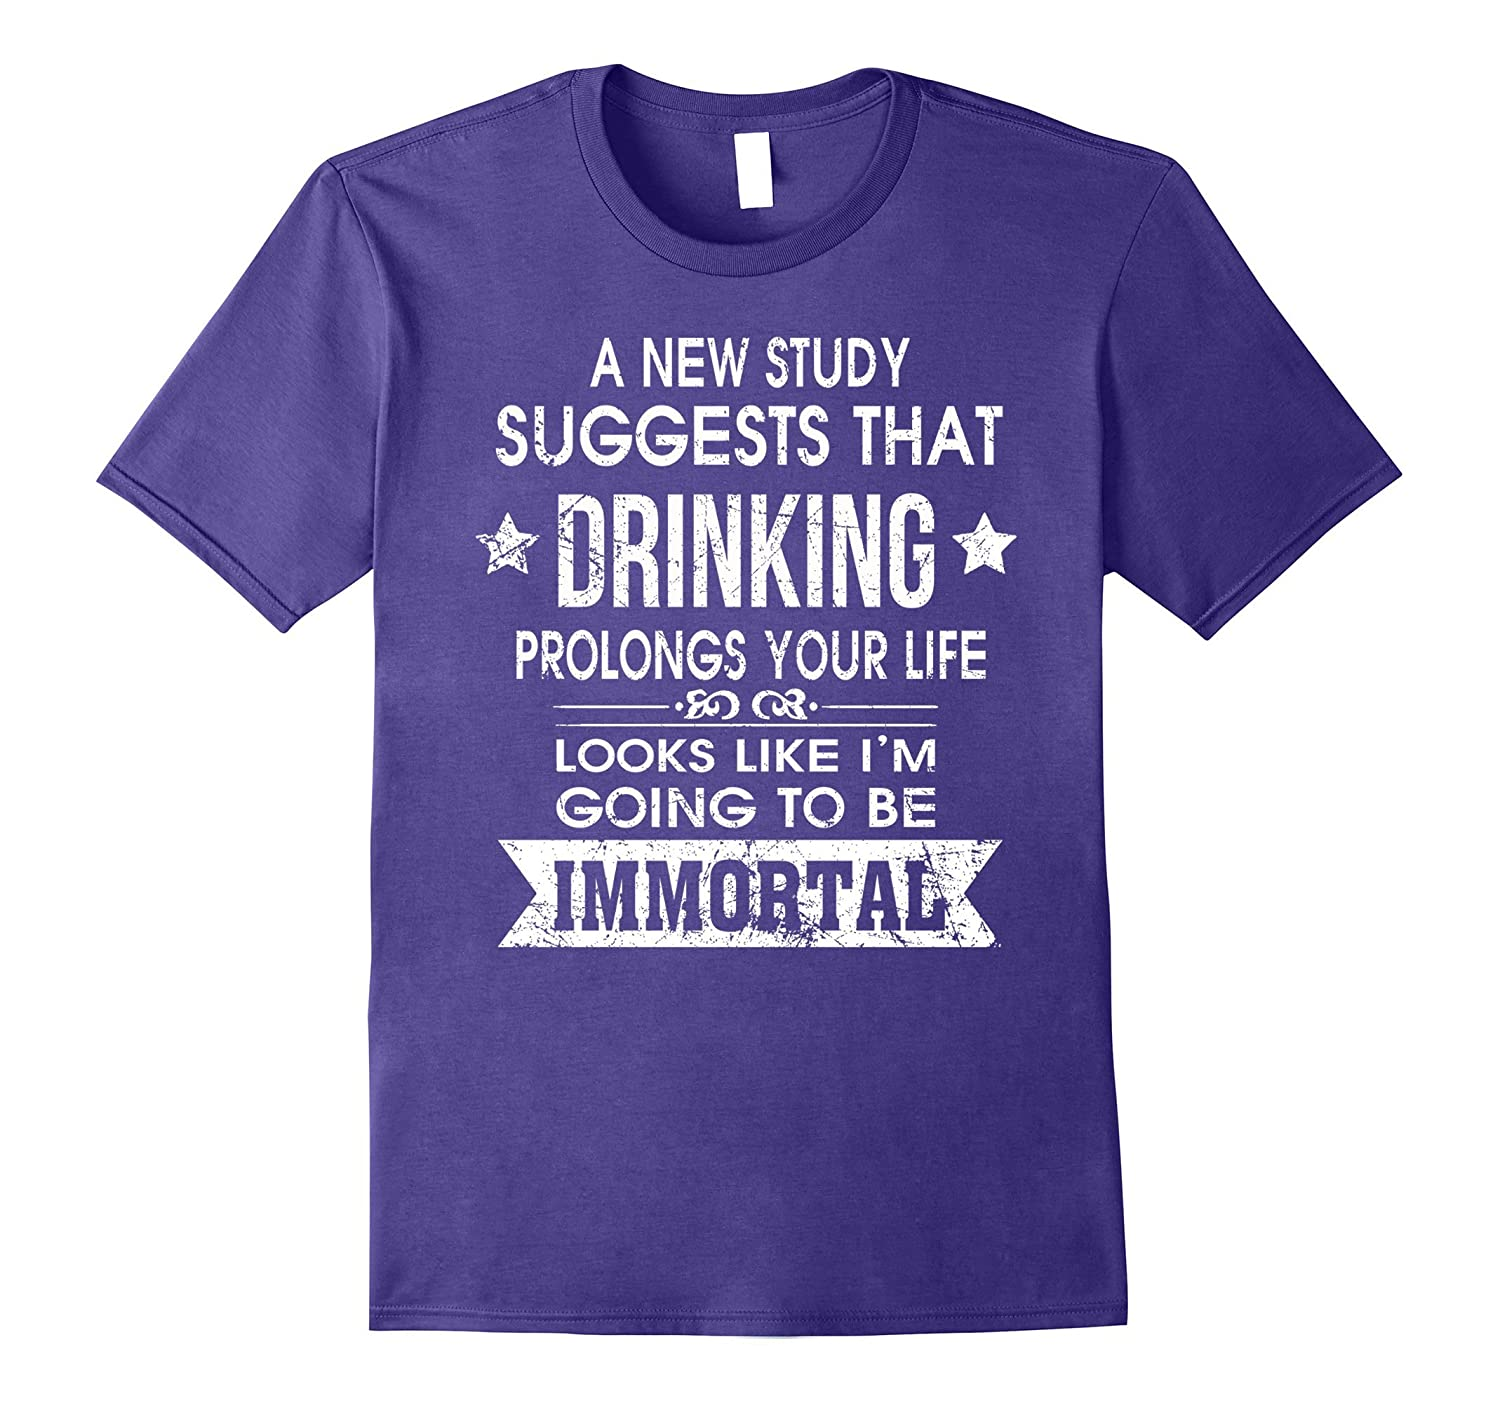 Drinking prolongs your life looks like im immortal t shirt-Vaci